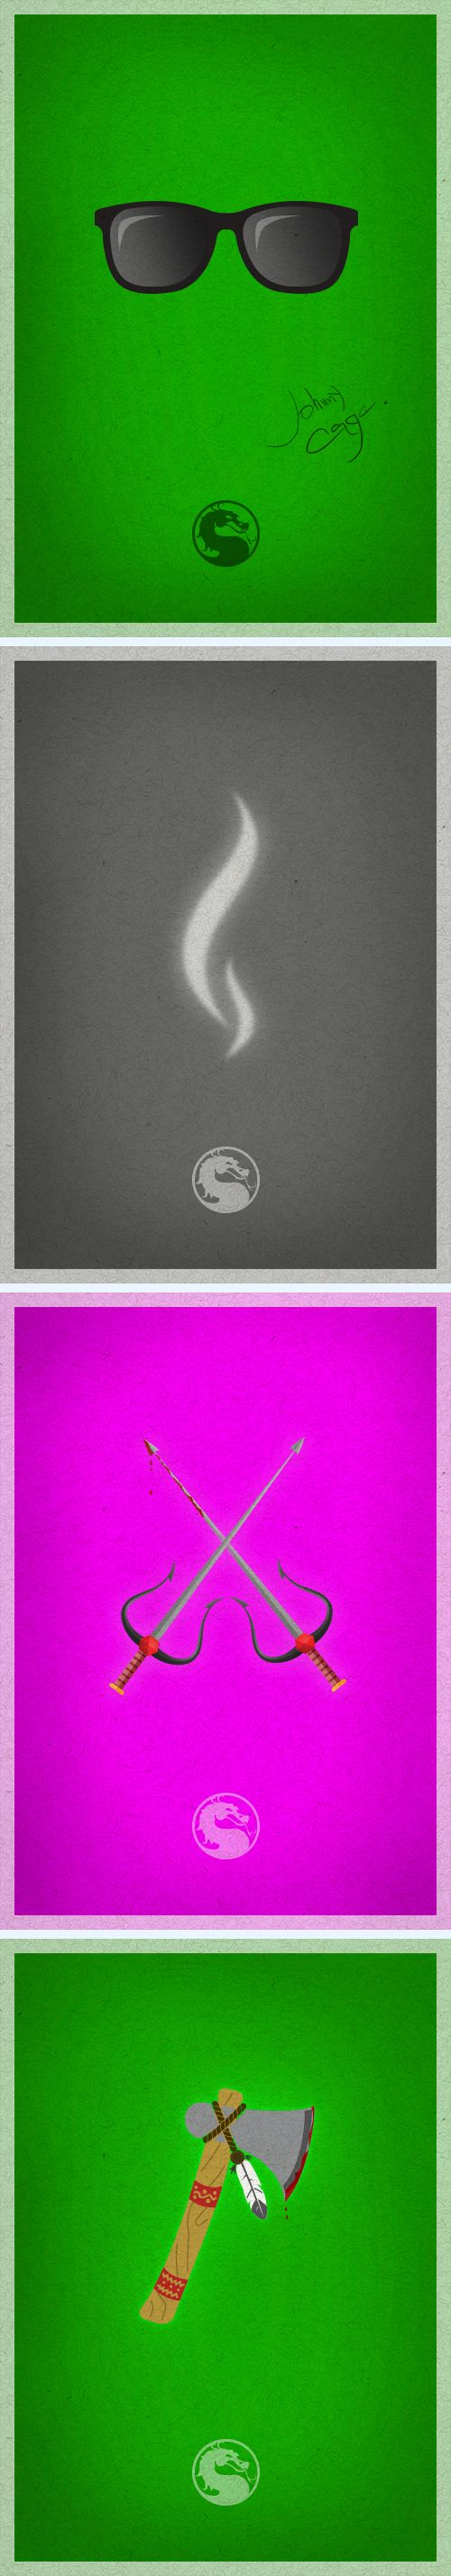 SET of minimalist posters of Mortal Kombat characters. Johnny Cage, Smoke, Mileena and Nightwolf. Follow me caiolabueno.tumblr.com